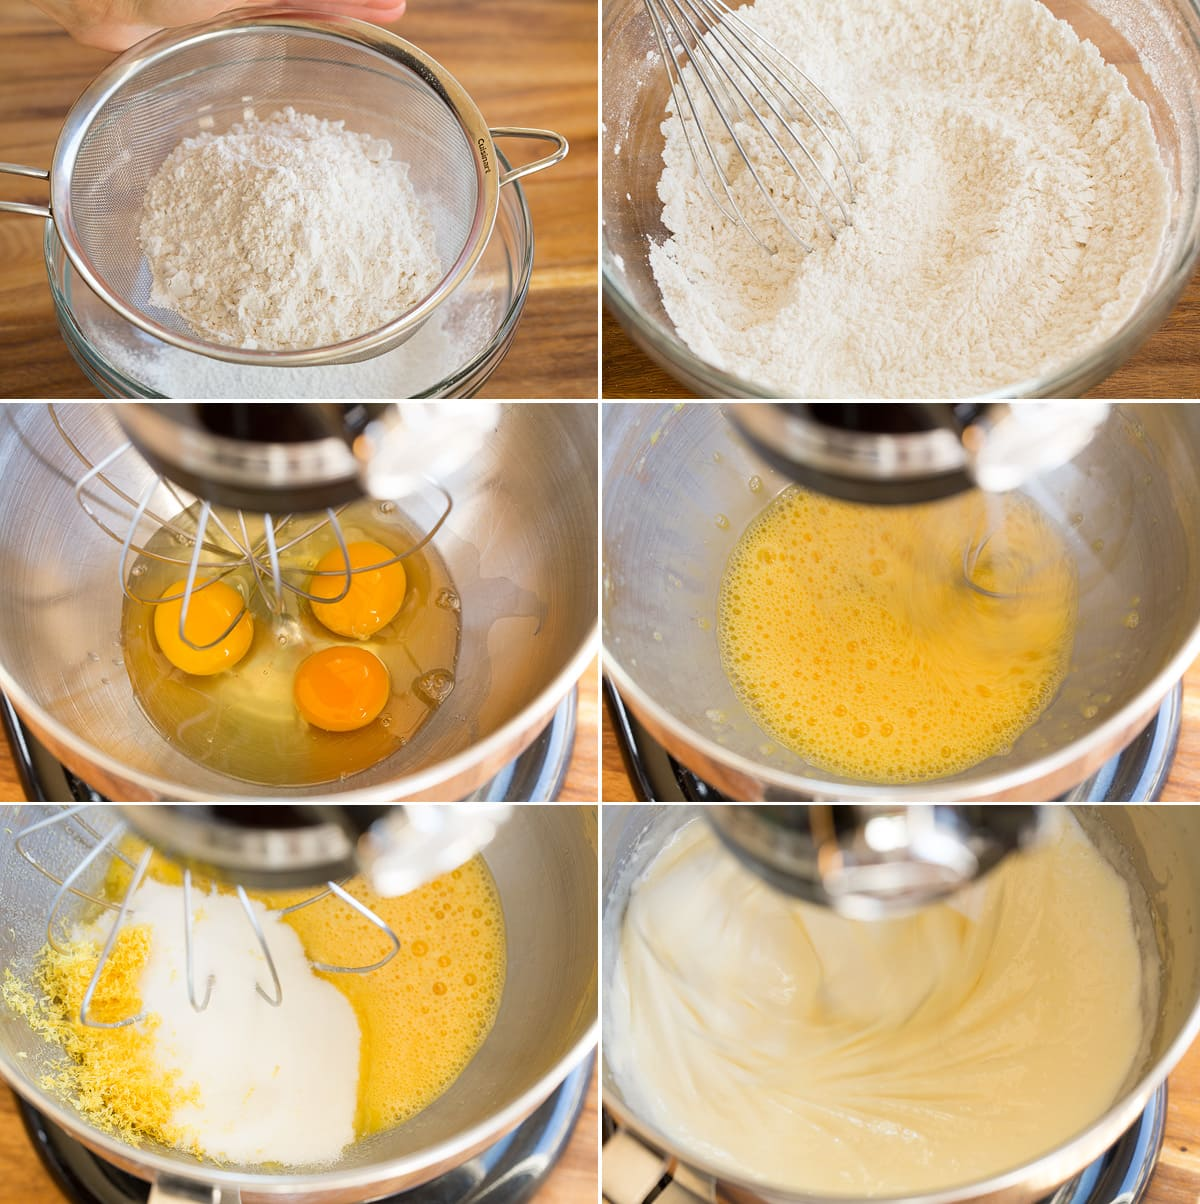 Collage of six photos showing steps of preparing olive oil cake batter in a mixer bowl.